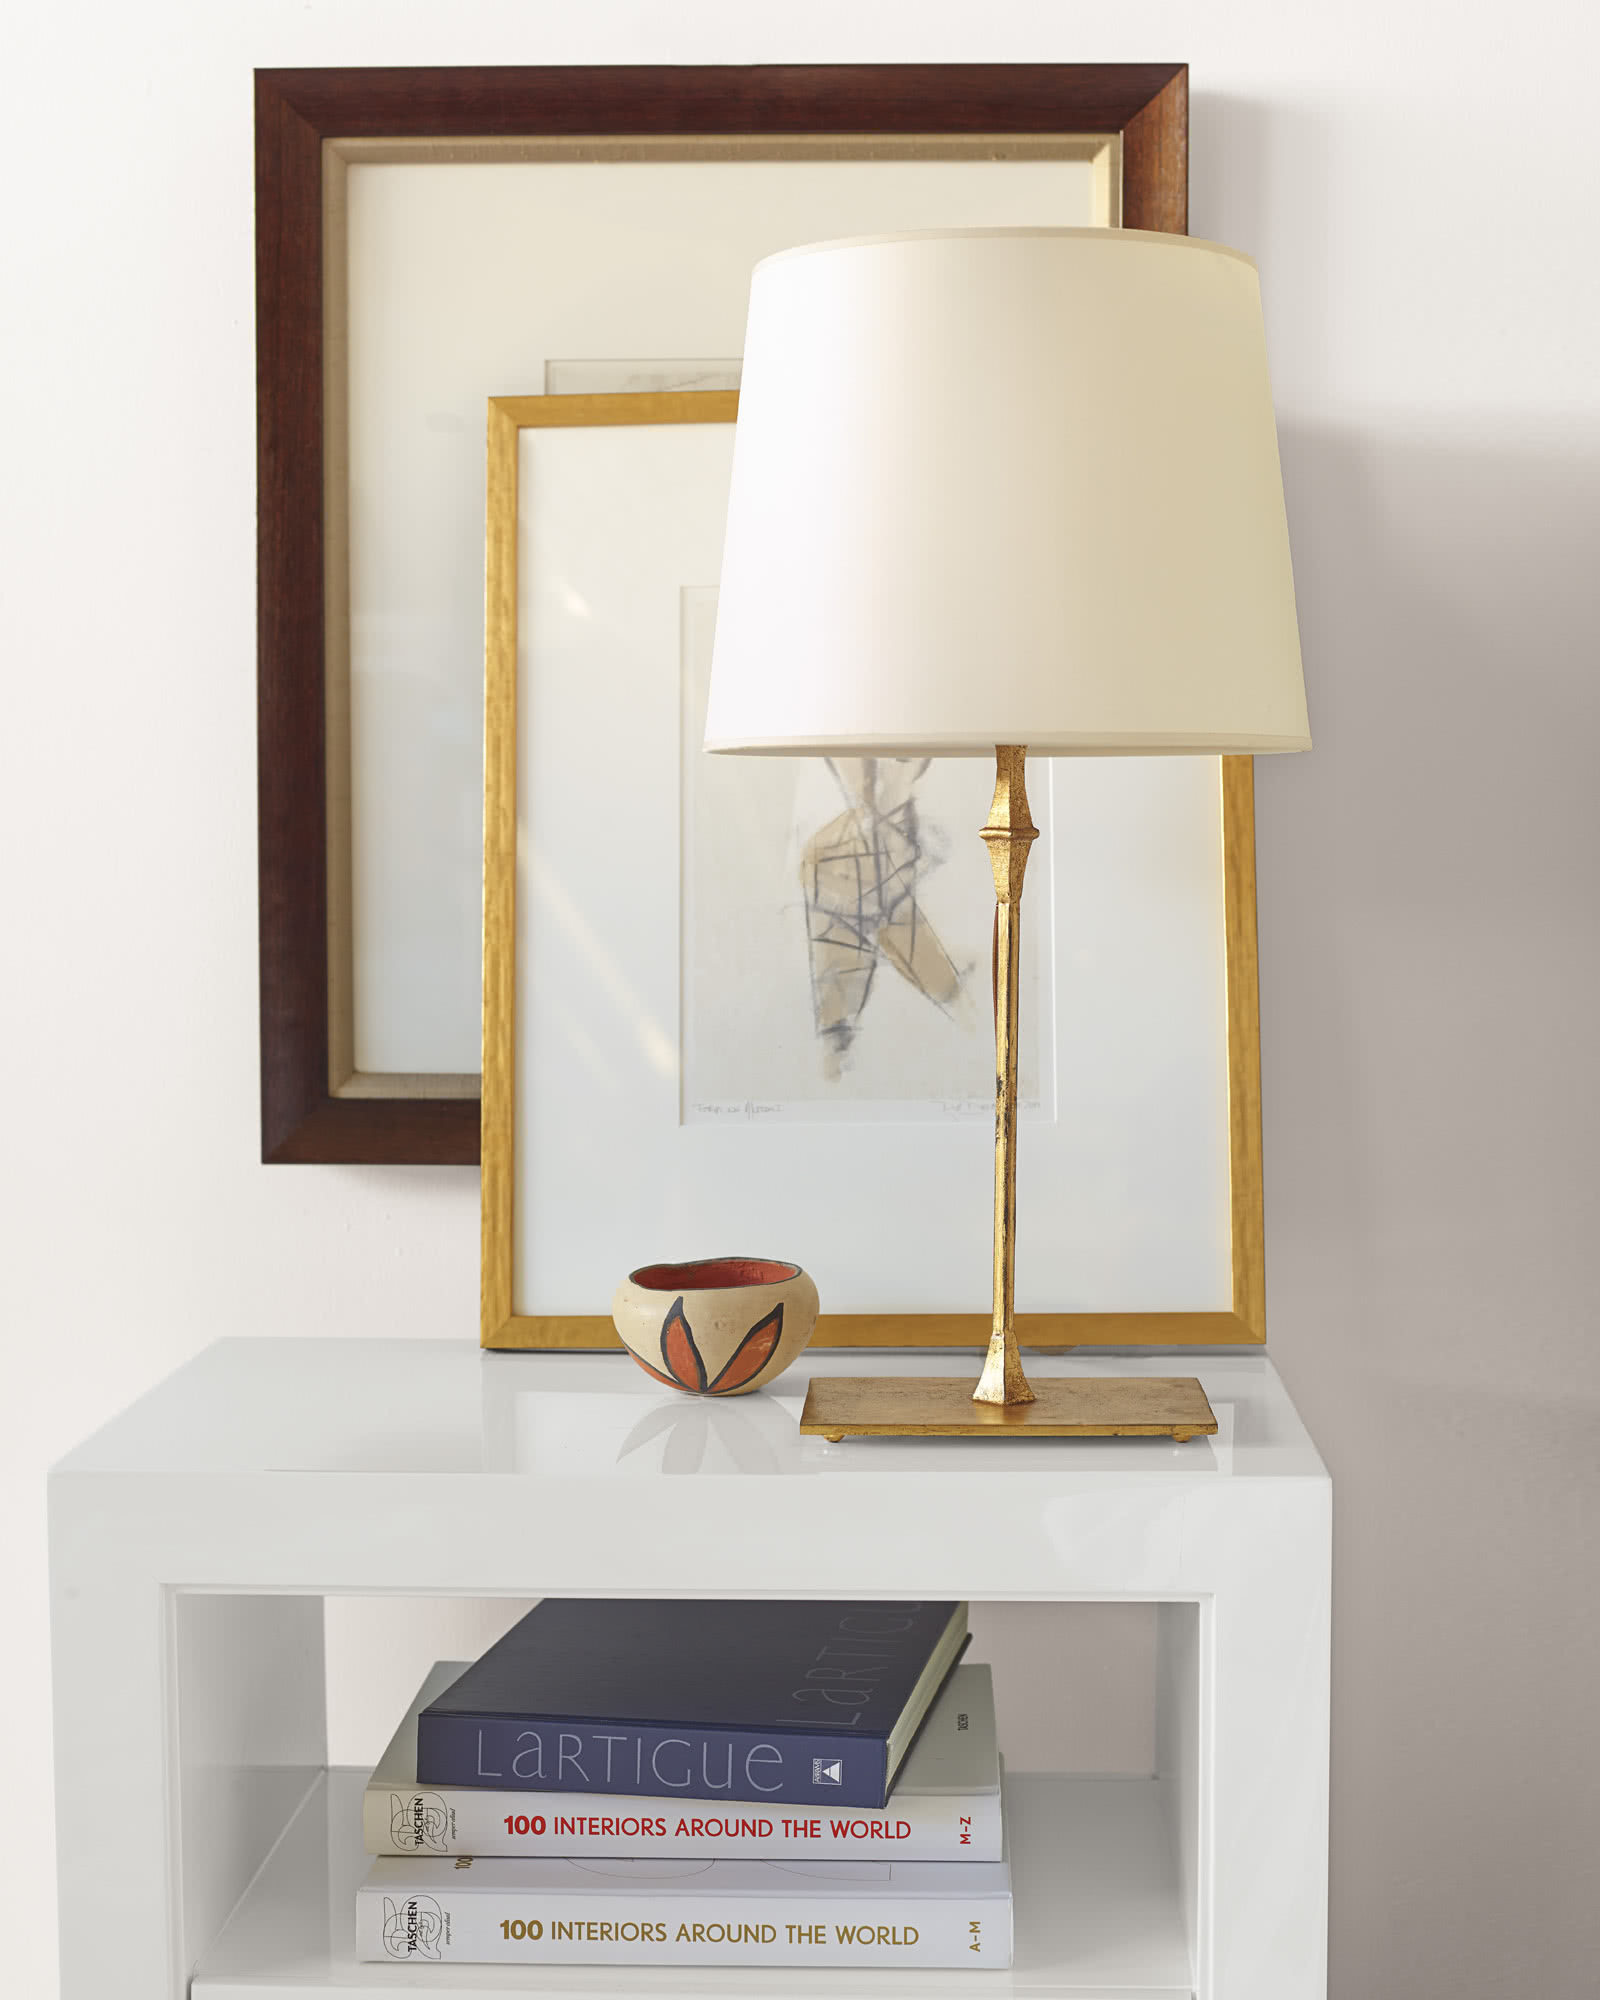 dauphine table lamp - Nightstand Lamp